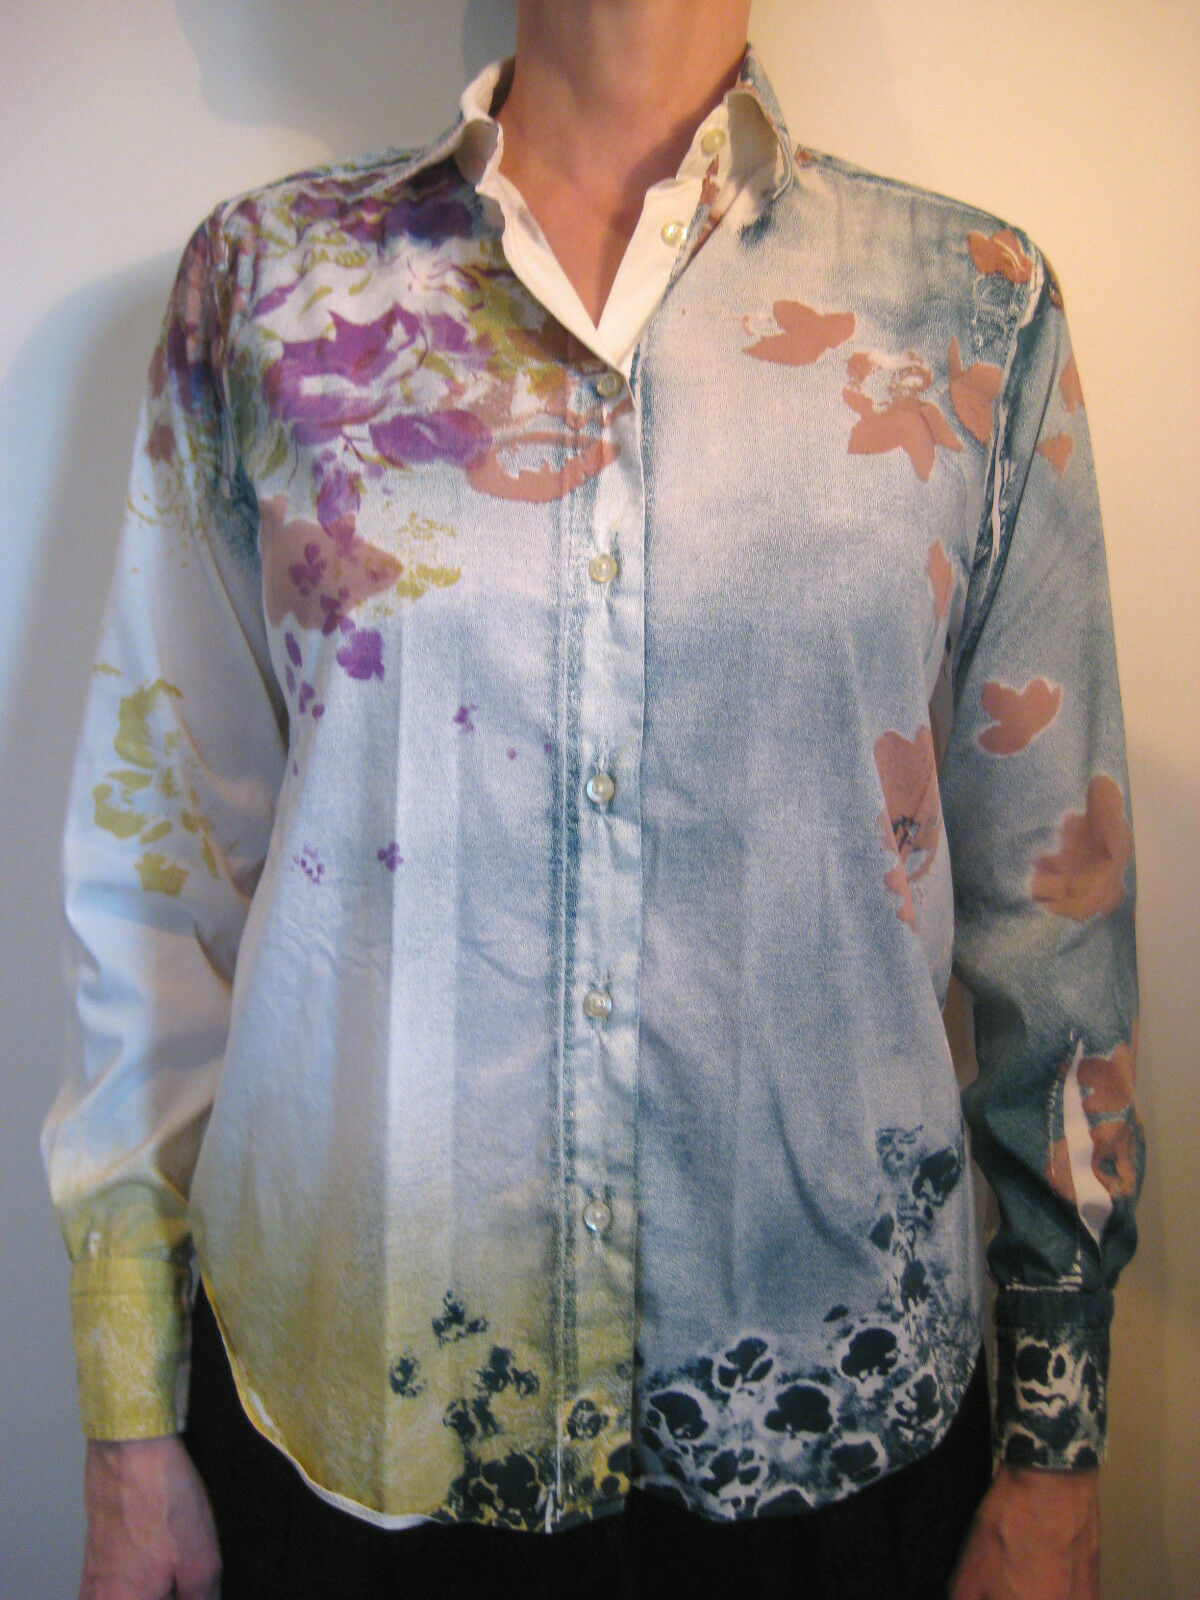 46cdd73d04 Etro Size 38 or 8 White Floral Blouse Cotton Button nrfwcj31337-Tops ...